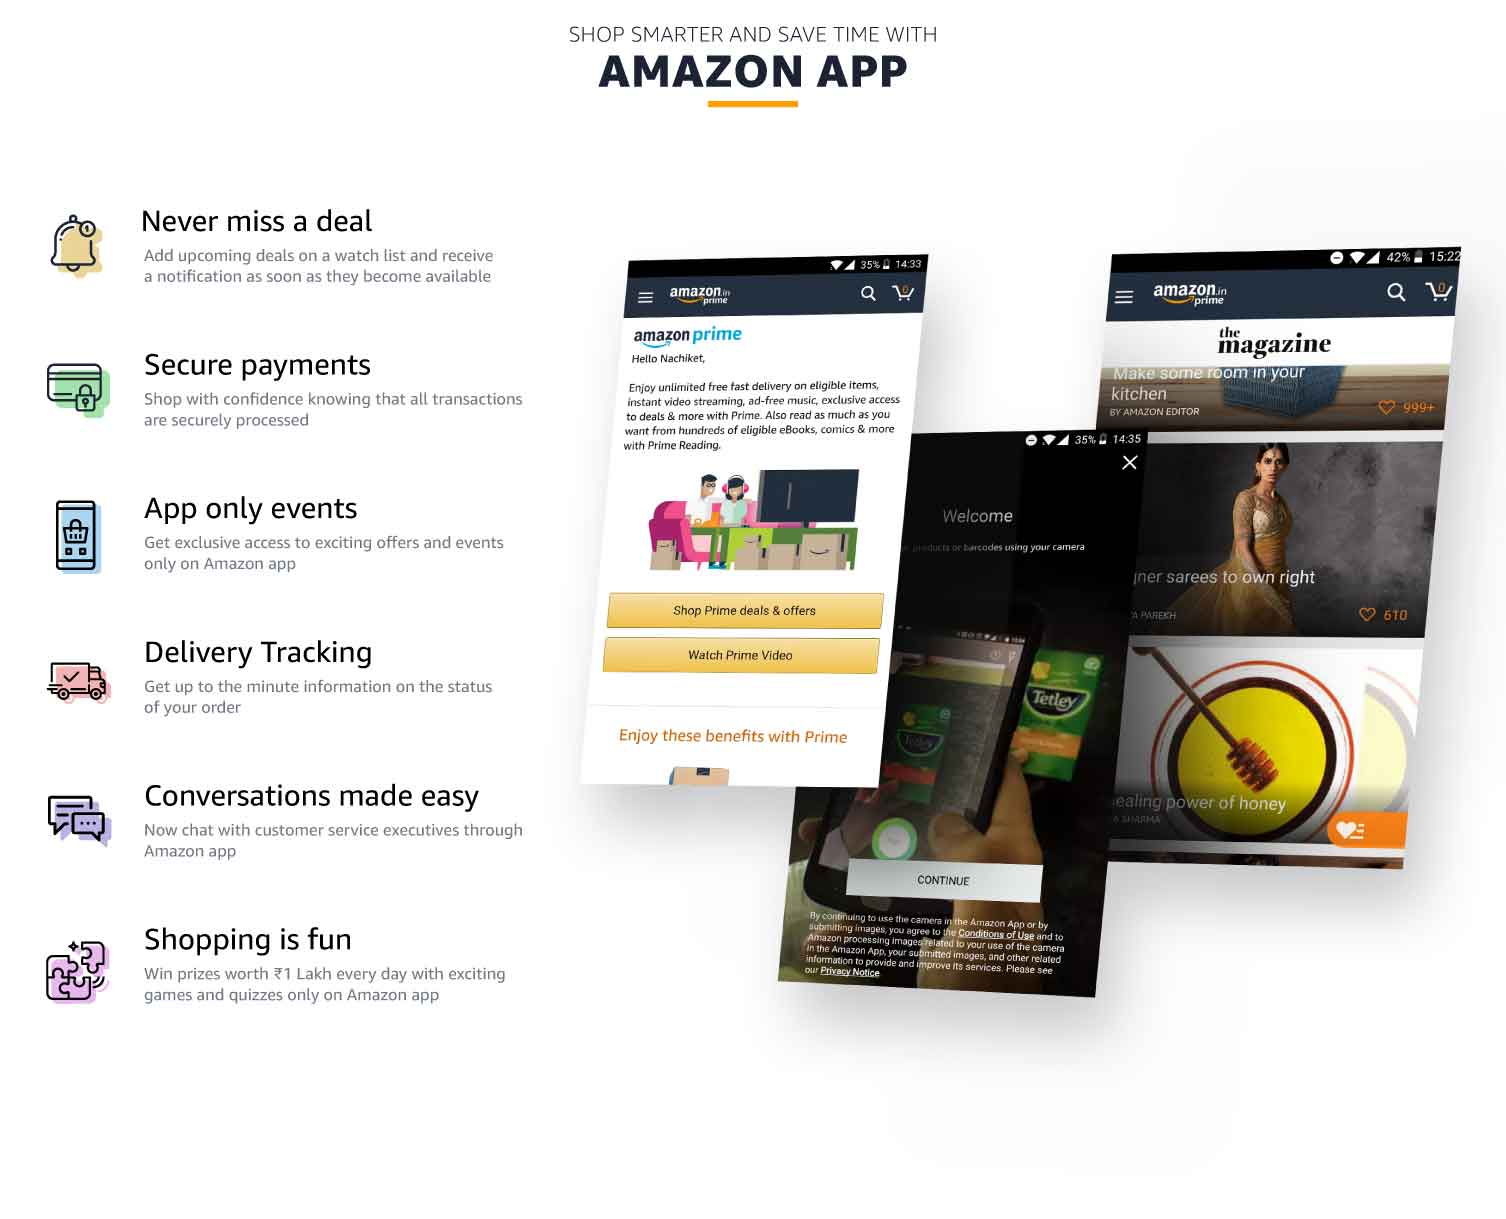 Amazon Shopping App @ Amazon in